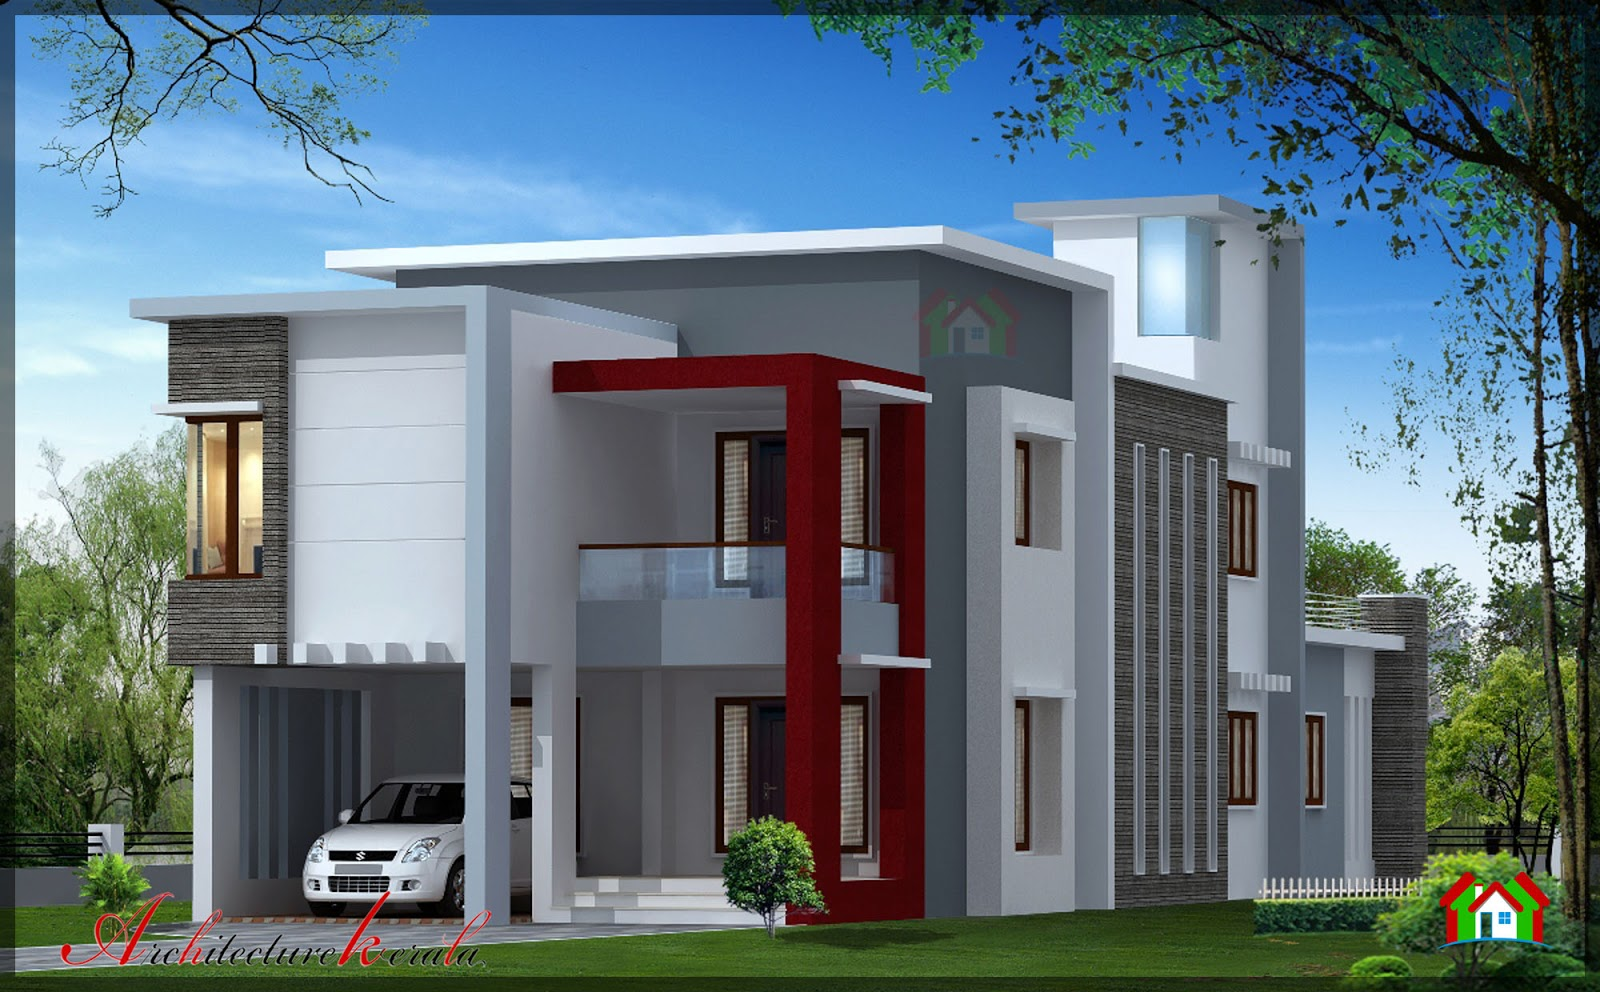 1700 Square Feet Contemporary House Design Architecture: modern square house